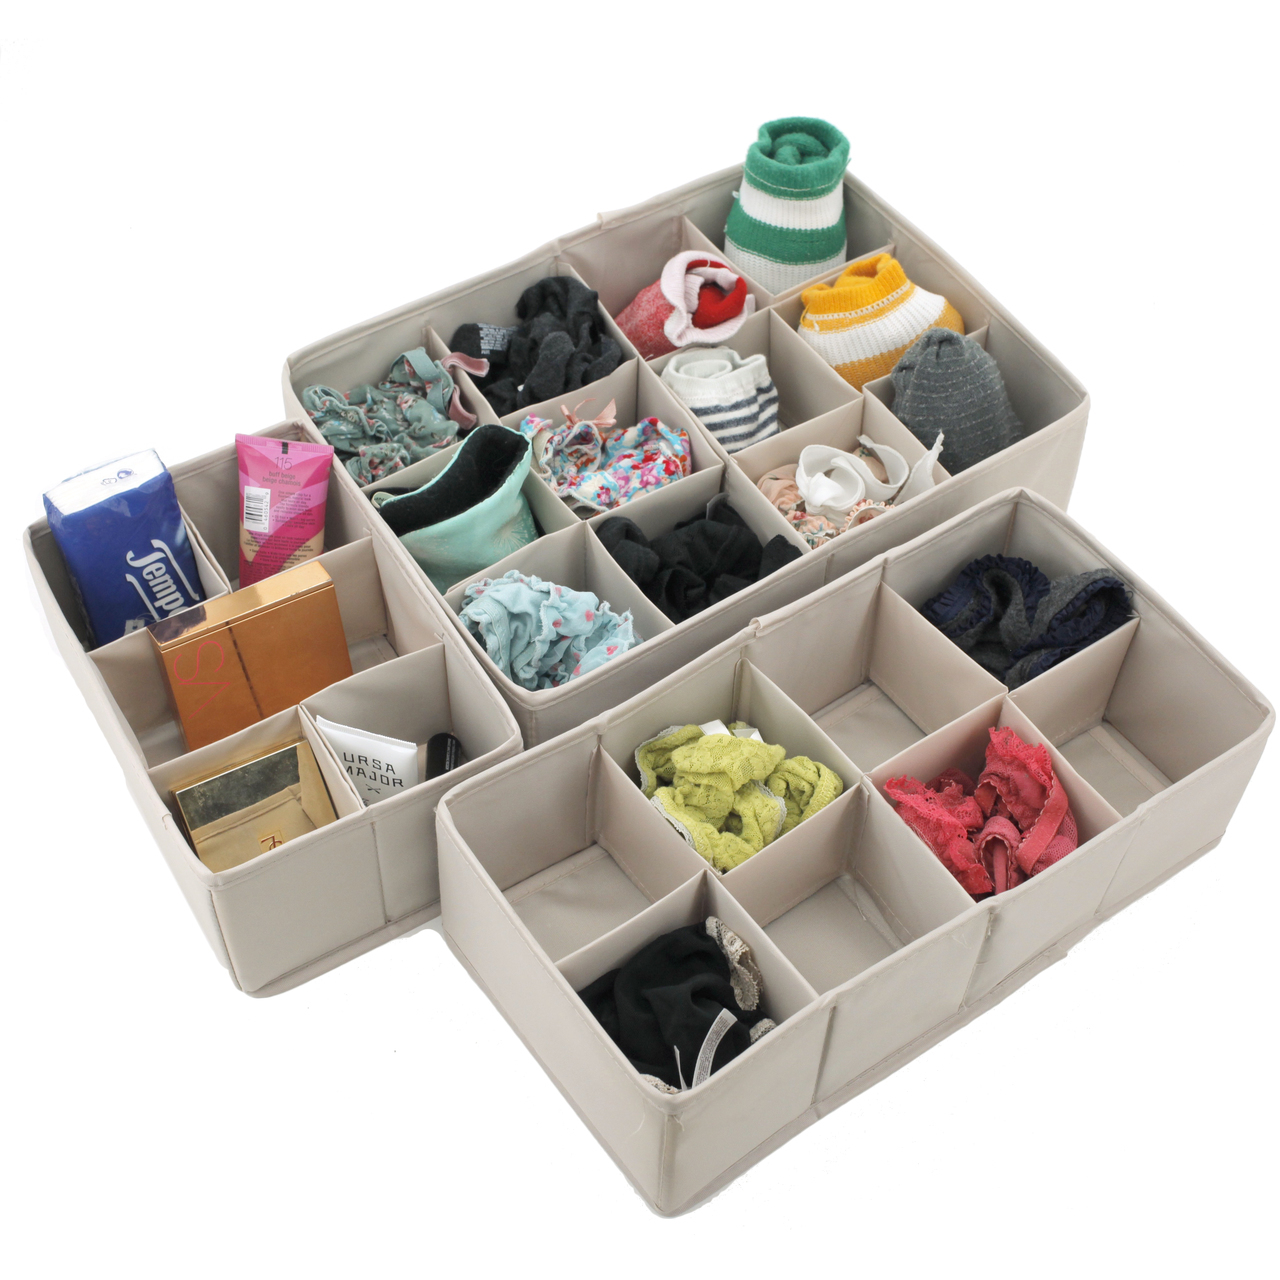 SET OF 3 - Shelf Drawer Vanity Organizers for Underwear, Boxers, Hosiery, Socks, Cosmetics, Wires, and Crafts - Adjustable Dividers